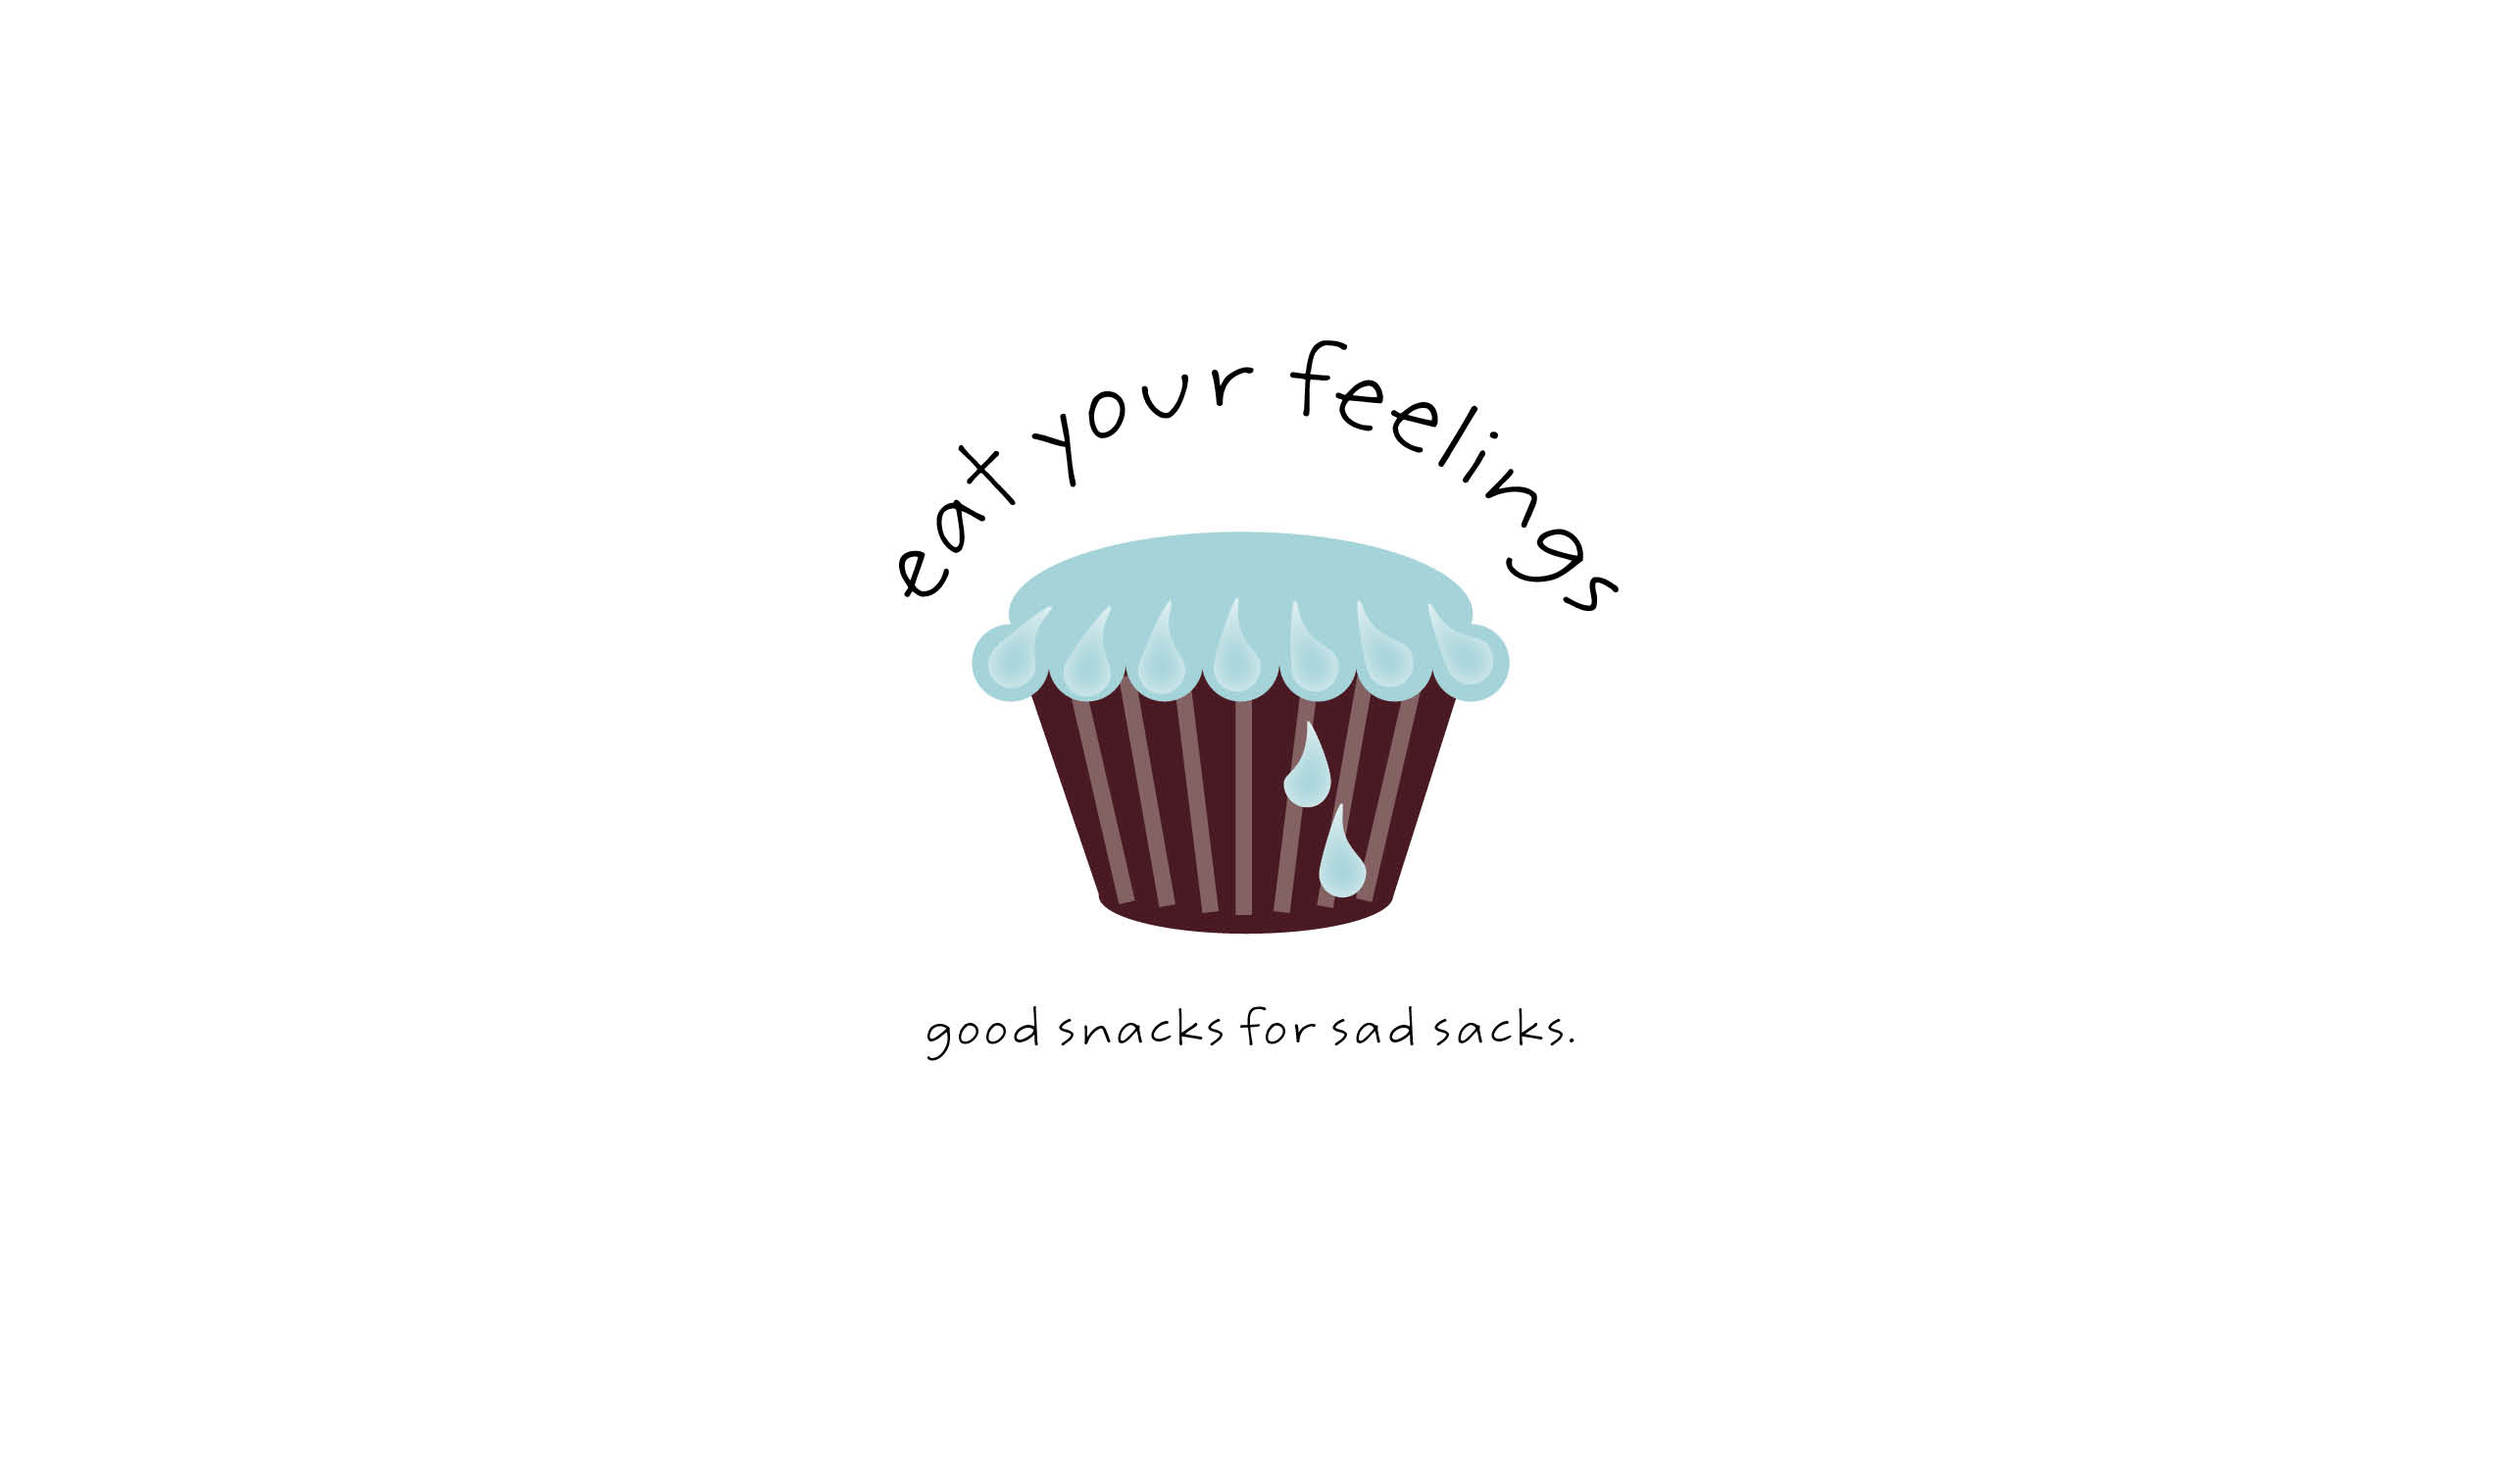 Eat Your Feelings | Baked goods